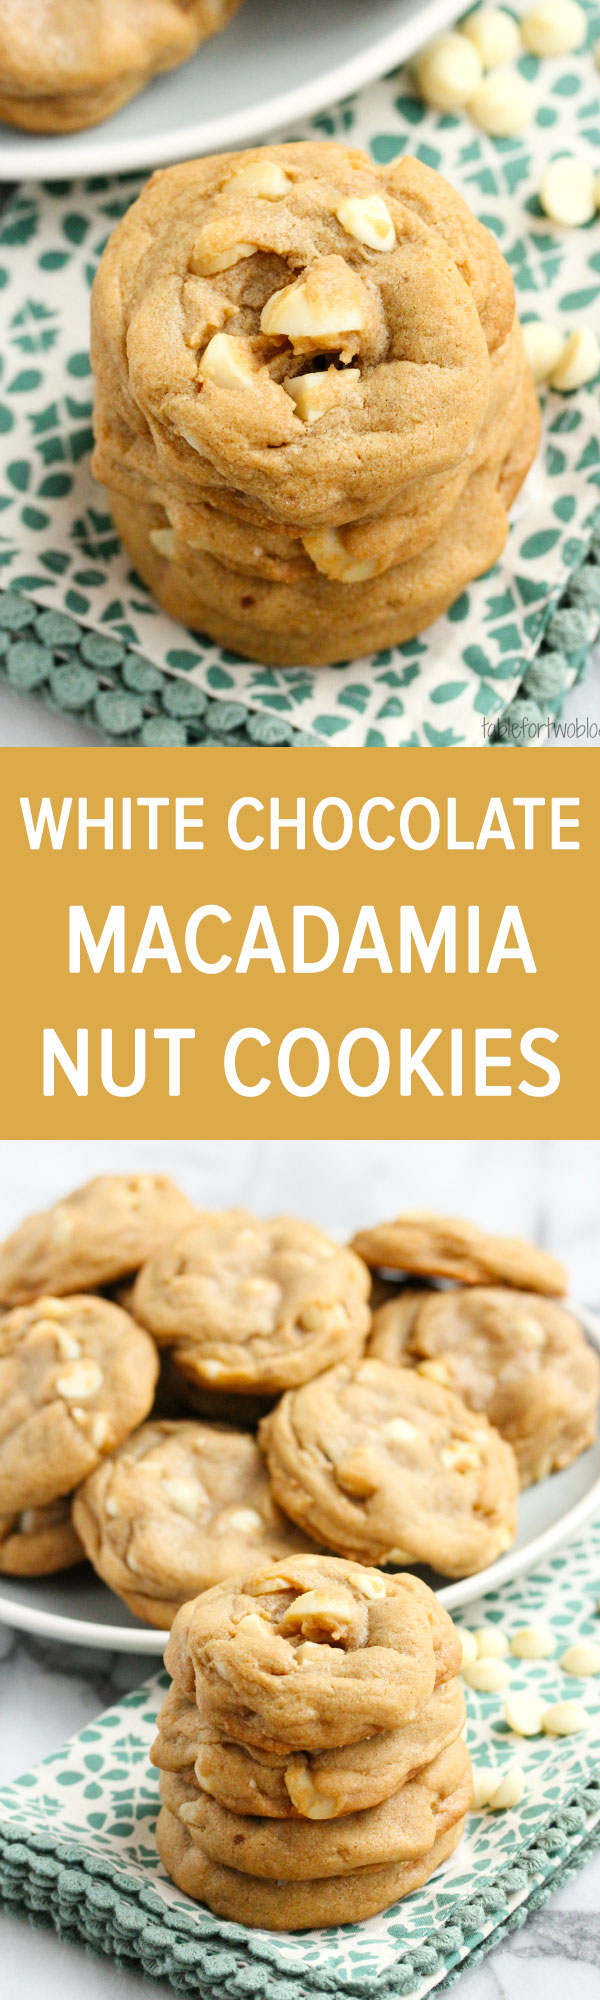 Macadamia Nut White Chocolate Chip Cookies From Tablefortwoblog Com